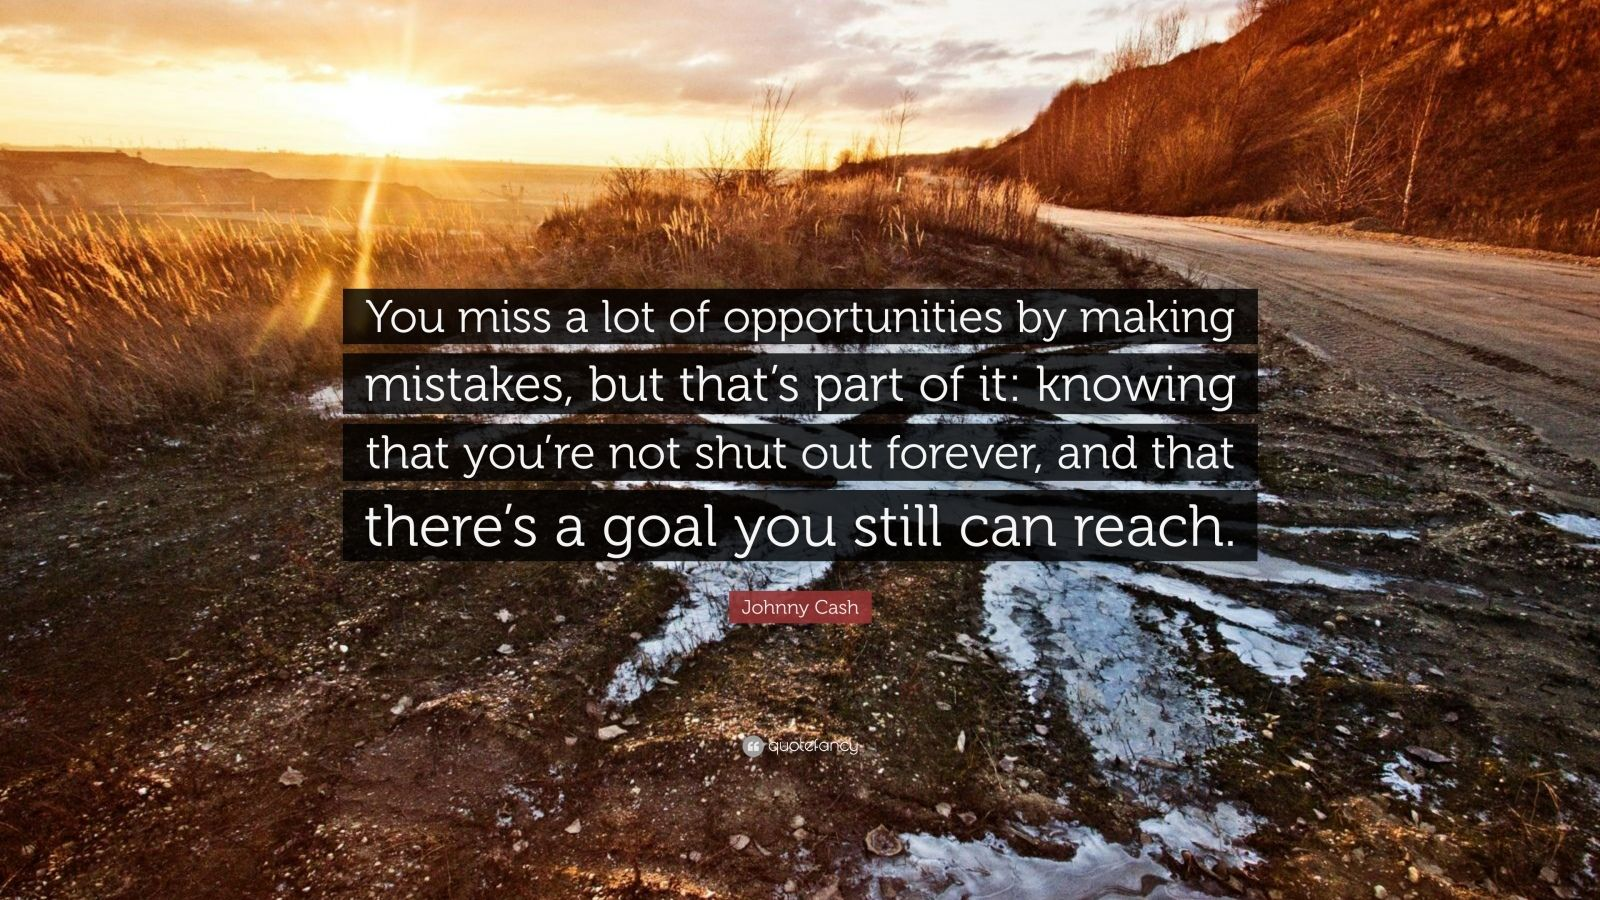 """Johnny Cash Quote: """"You miss a lot of opportunities by making mistakes, but that's part of it: knowing that you're not shut out forever, and that there's a goal you still can reach."""""""